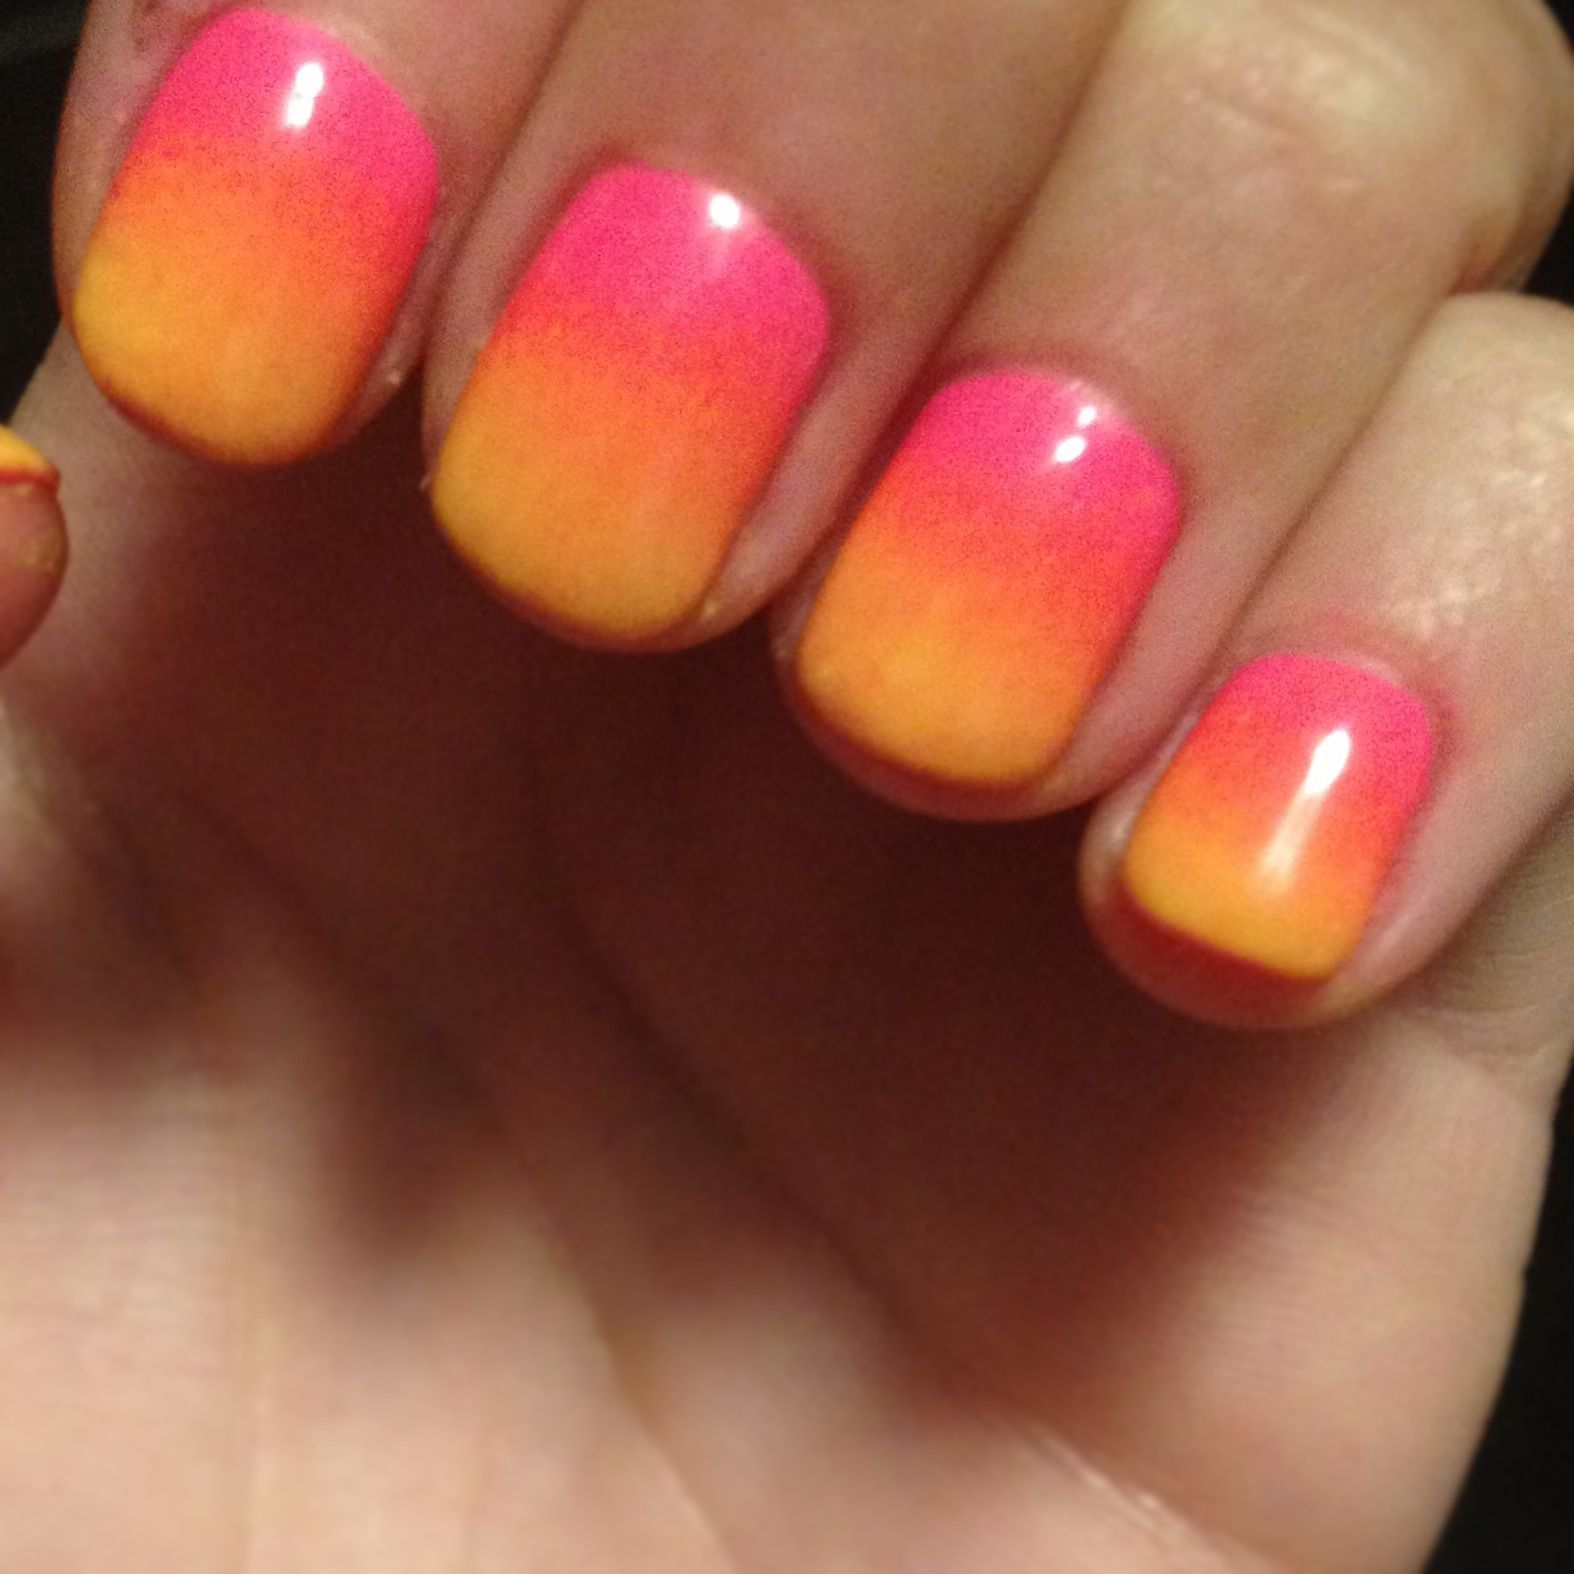 Ombre Nails Aruba Summer Pink Orange Yellow Ombre Nails Nails Candy Corn Nails